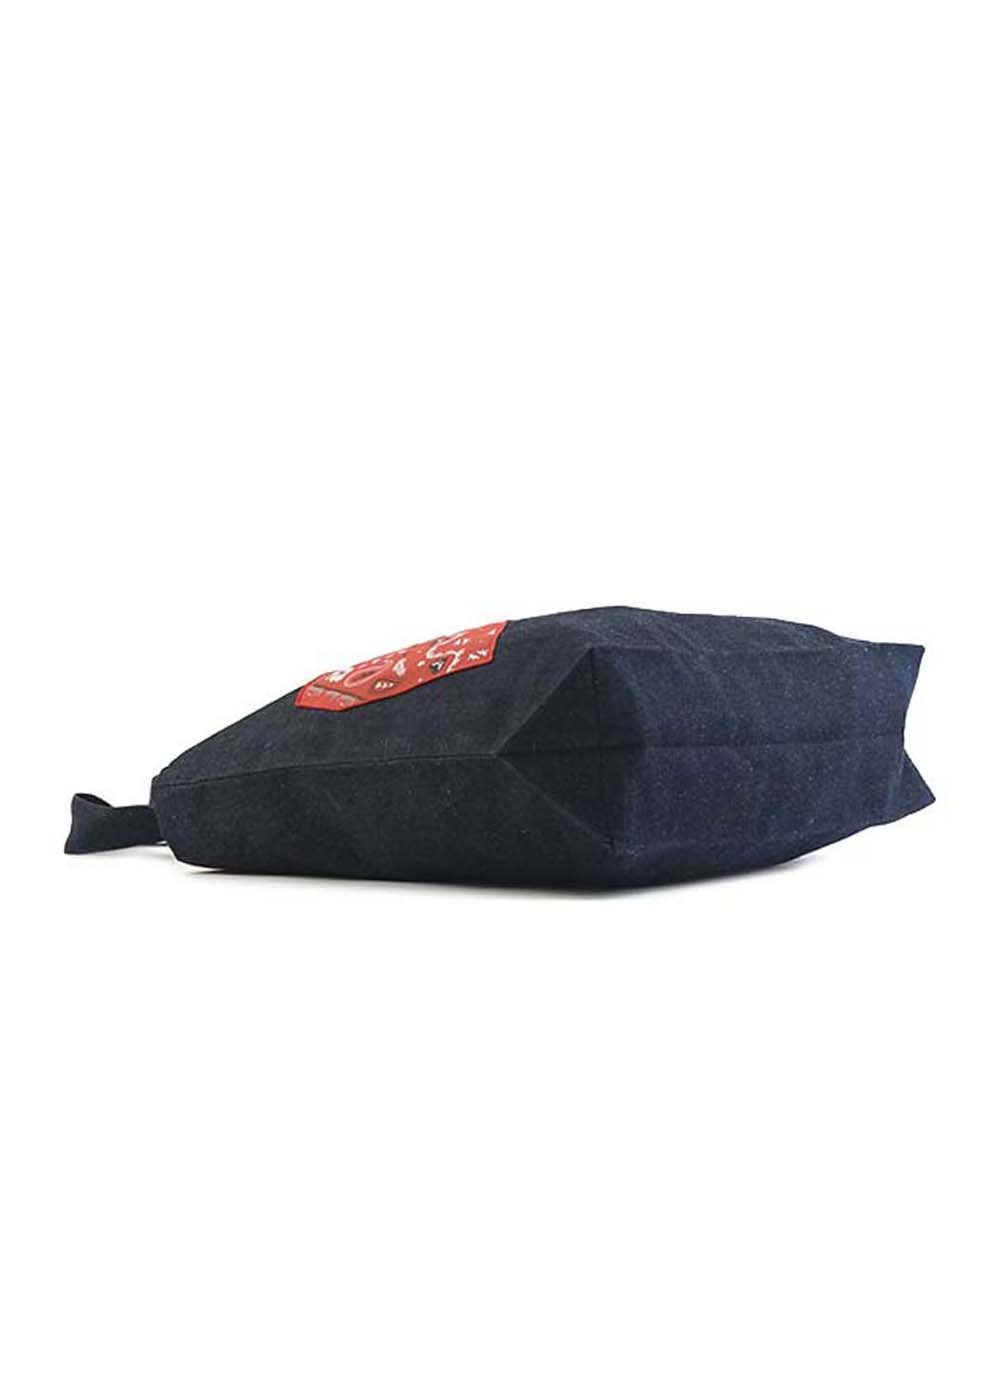 【最大35%OFF】TOTE BAG BANDANA HEART|NAVY MELANGE|トートバッグ|MAISON KITSUNE